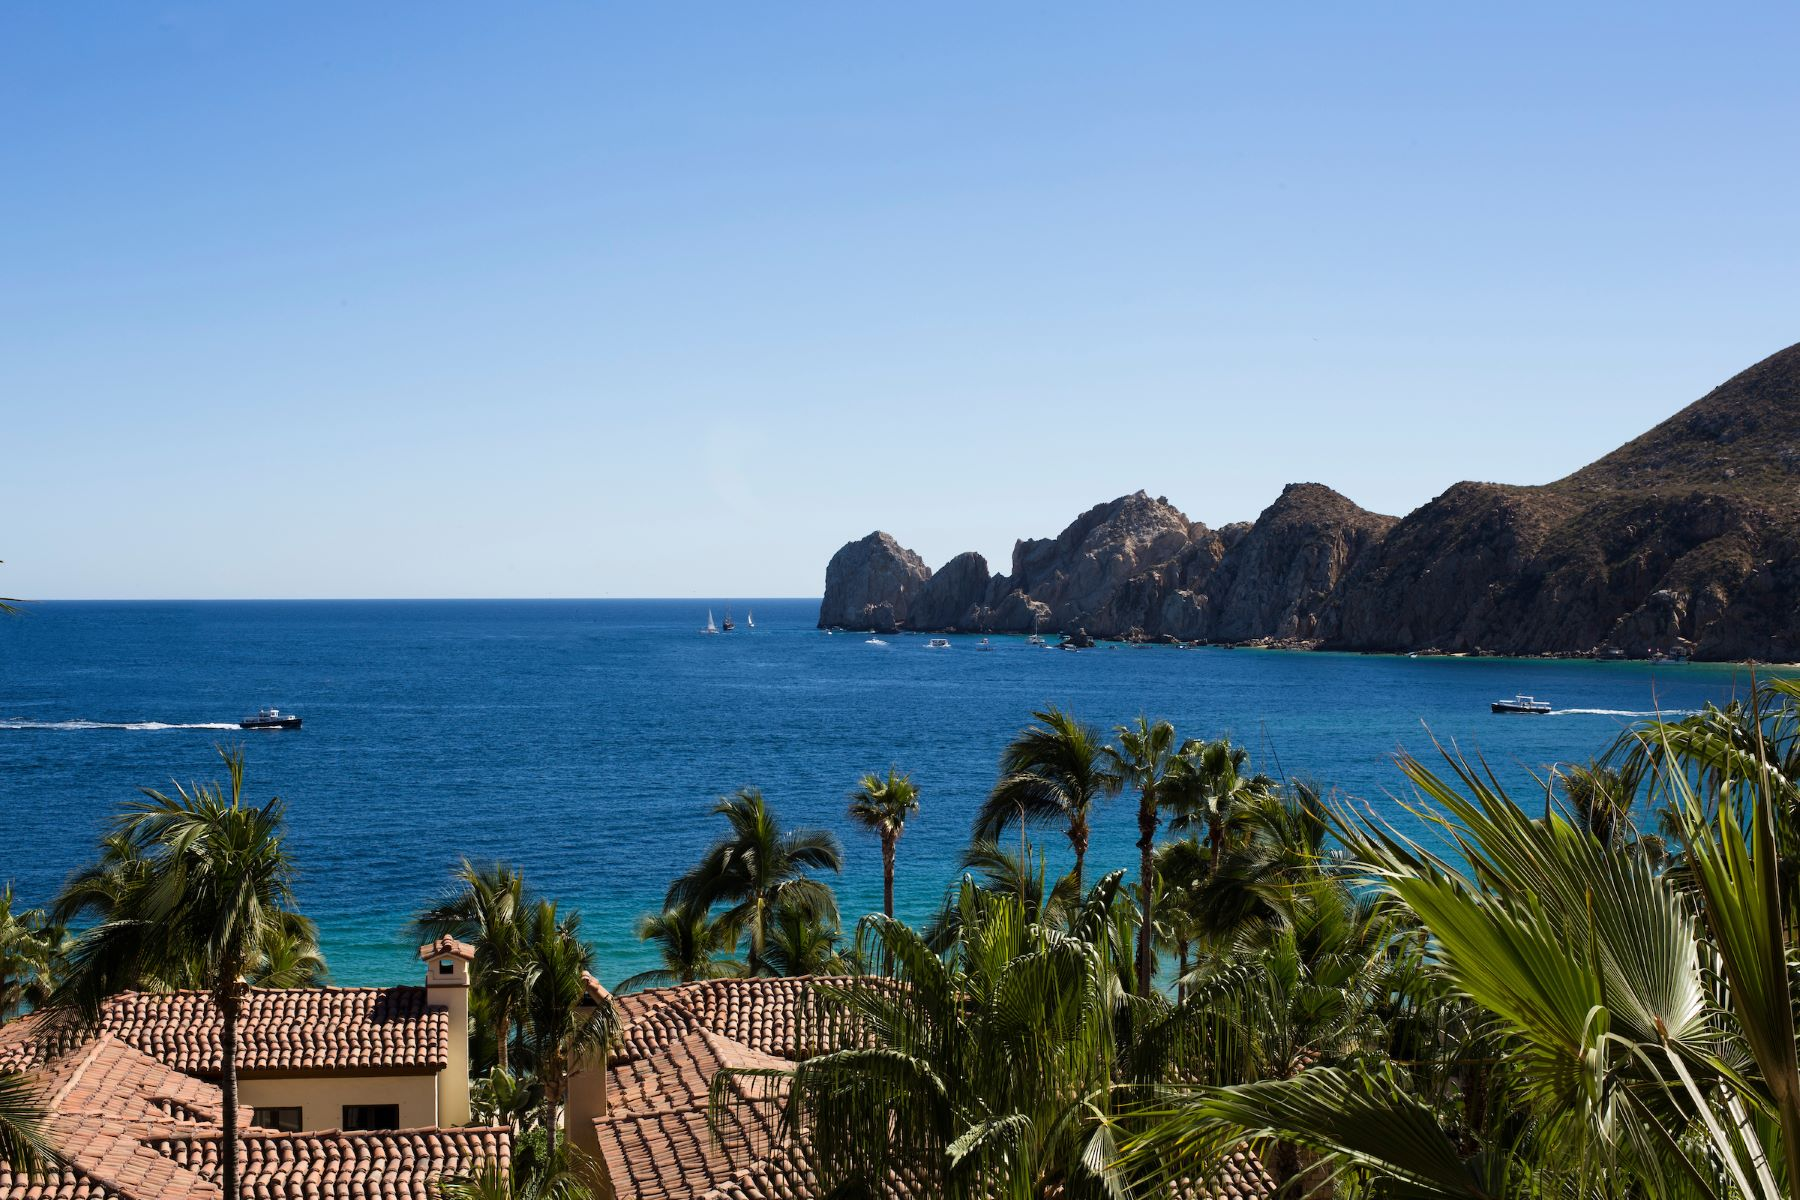 Condominium for Sale at Hacienda 2-304 Cabo San Lucas, Baja California Sur Mexico